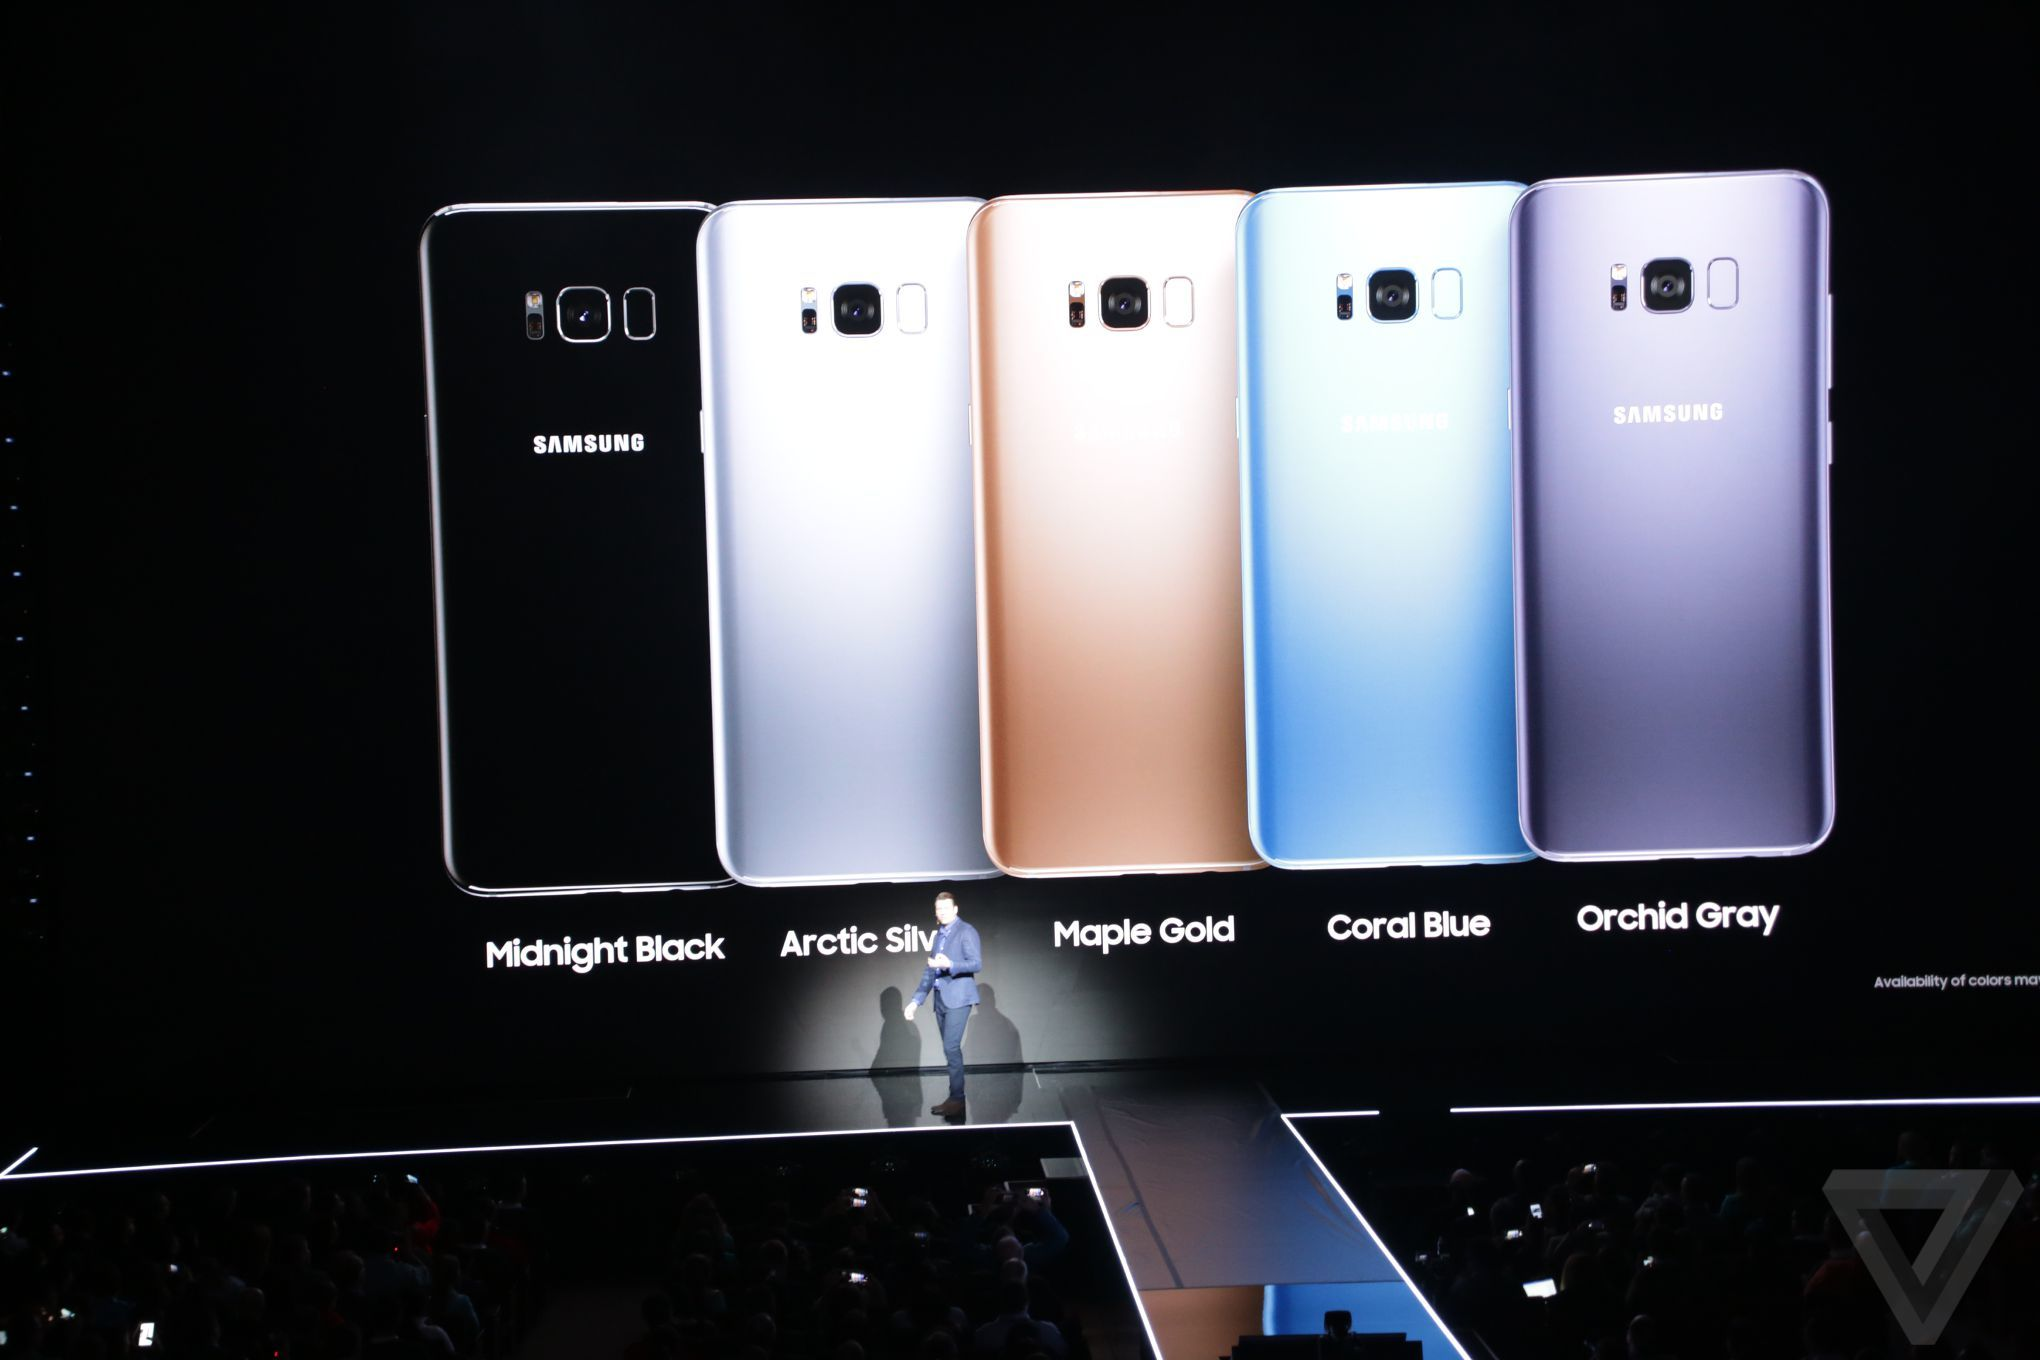 Colores of samsung galaxy s8